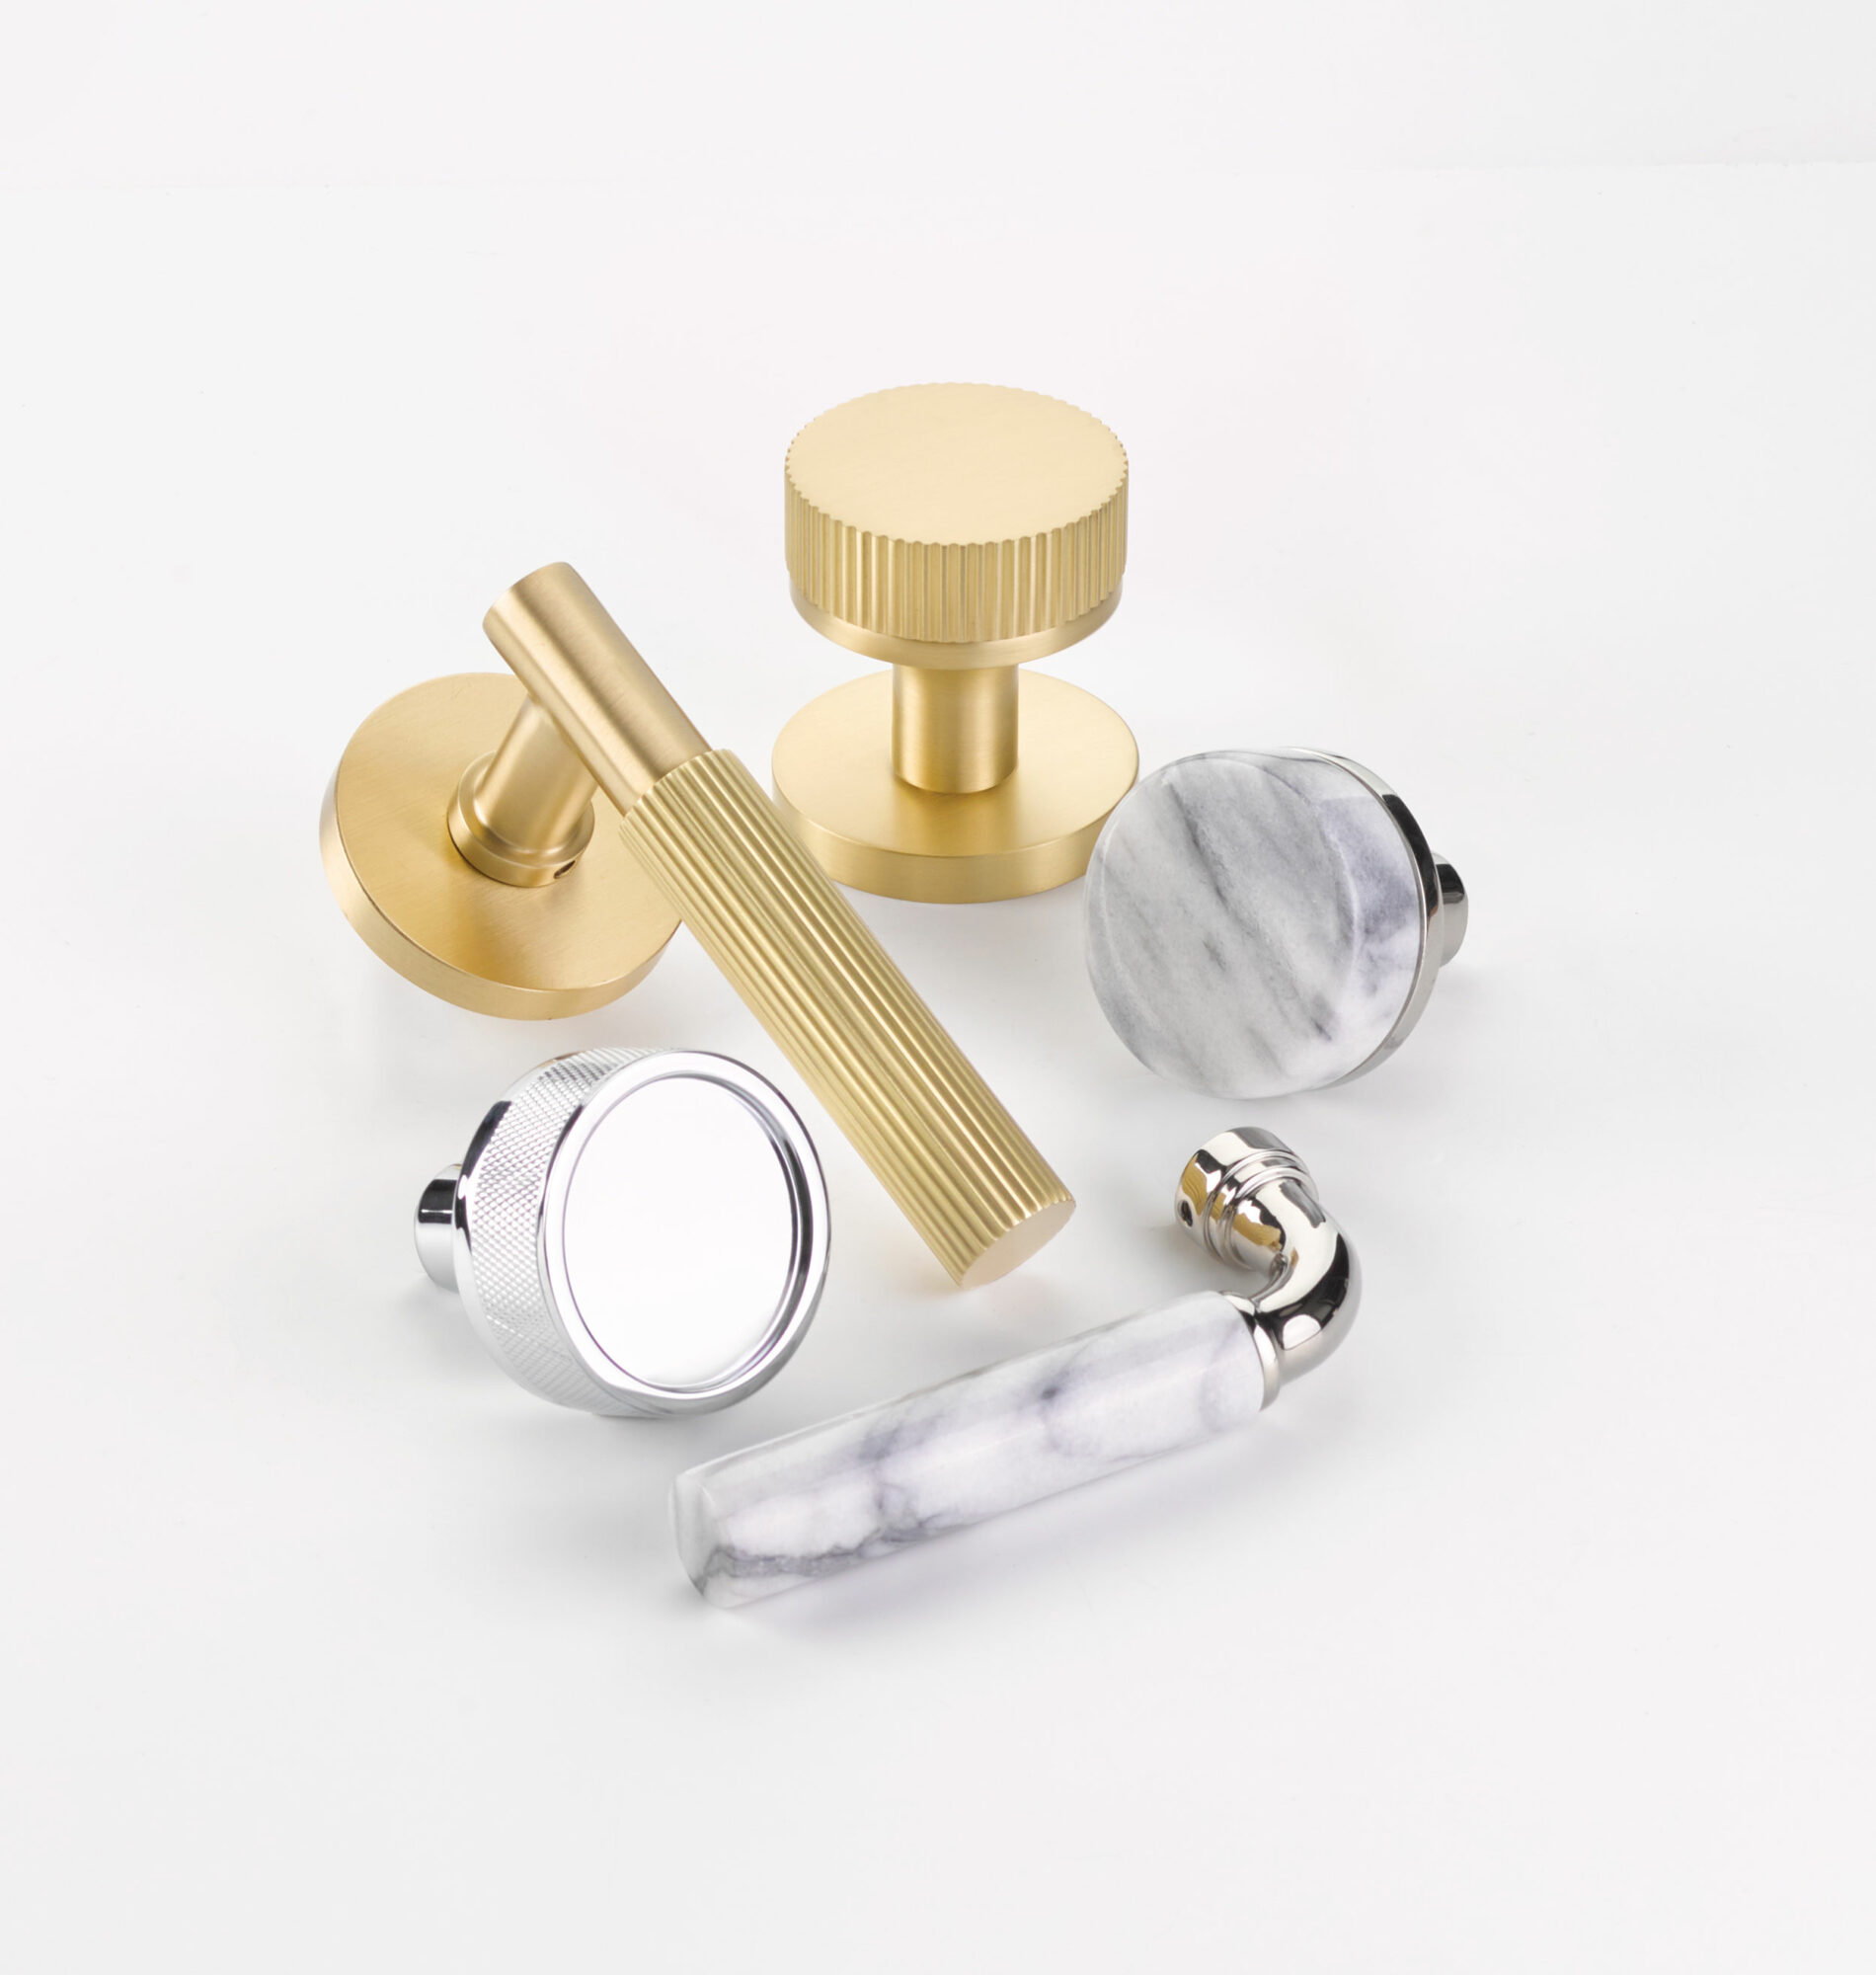 emtek clear and gold hardware